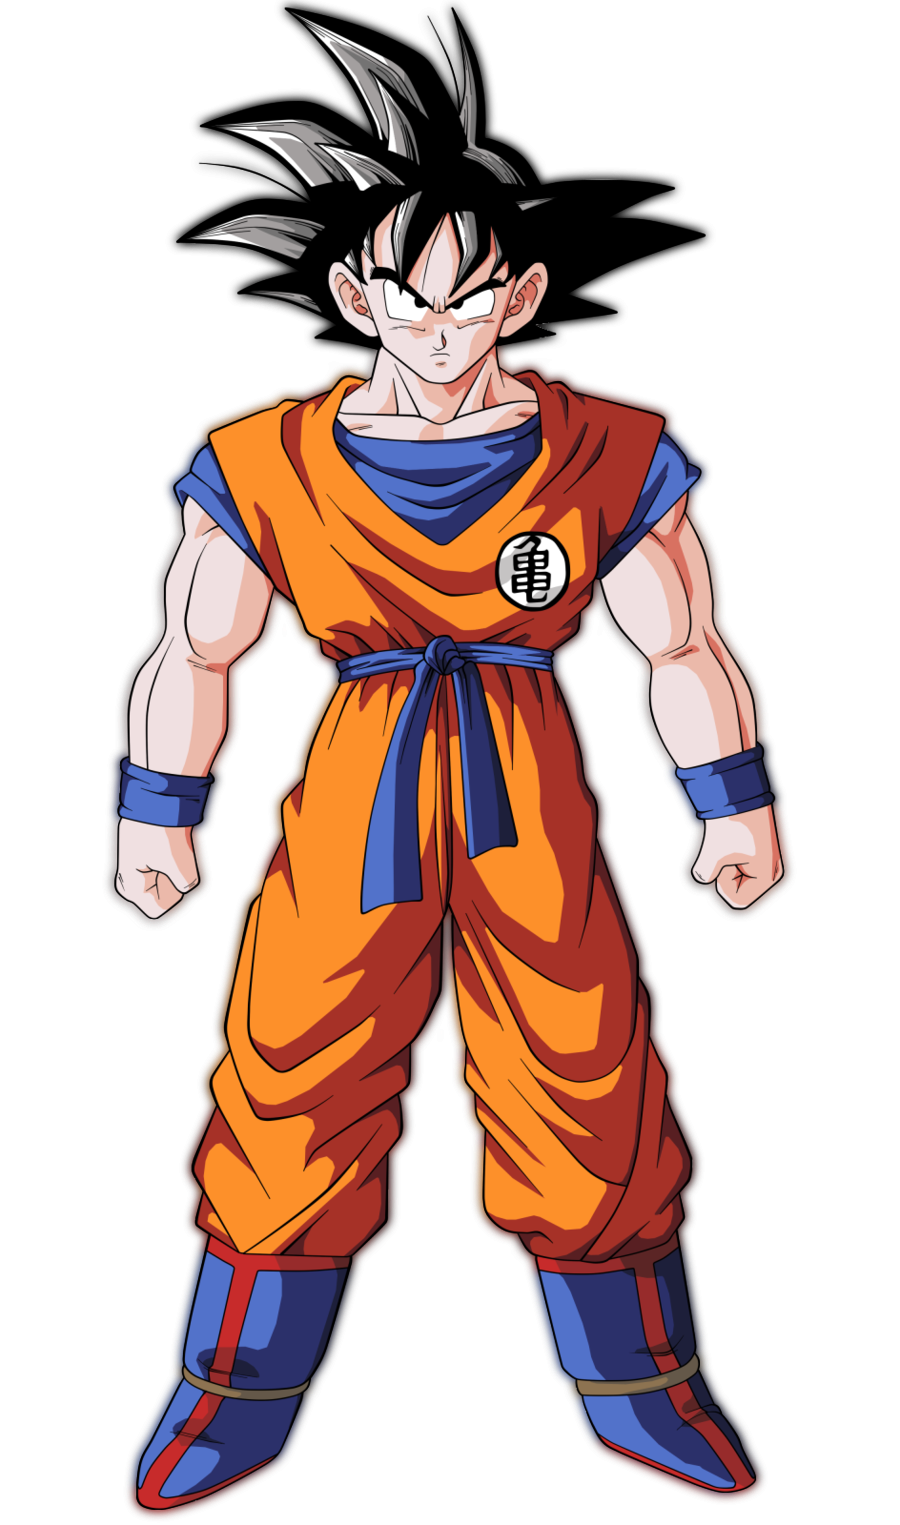 Image son goku character dragon ball wiki - Dragon ball z goku son ...